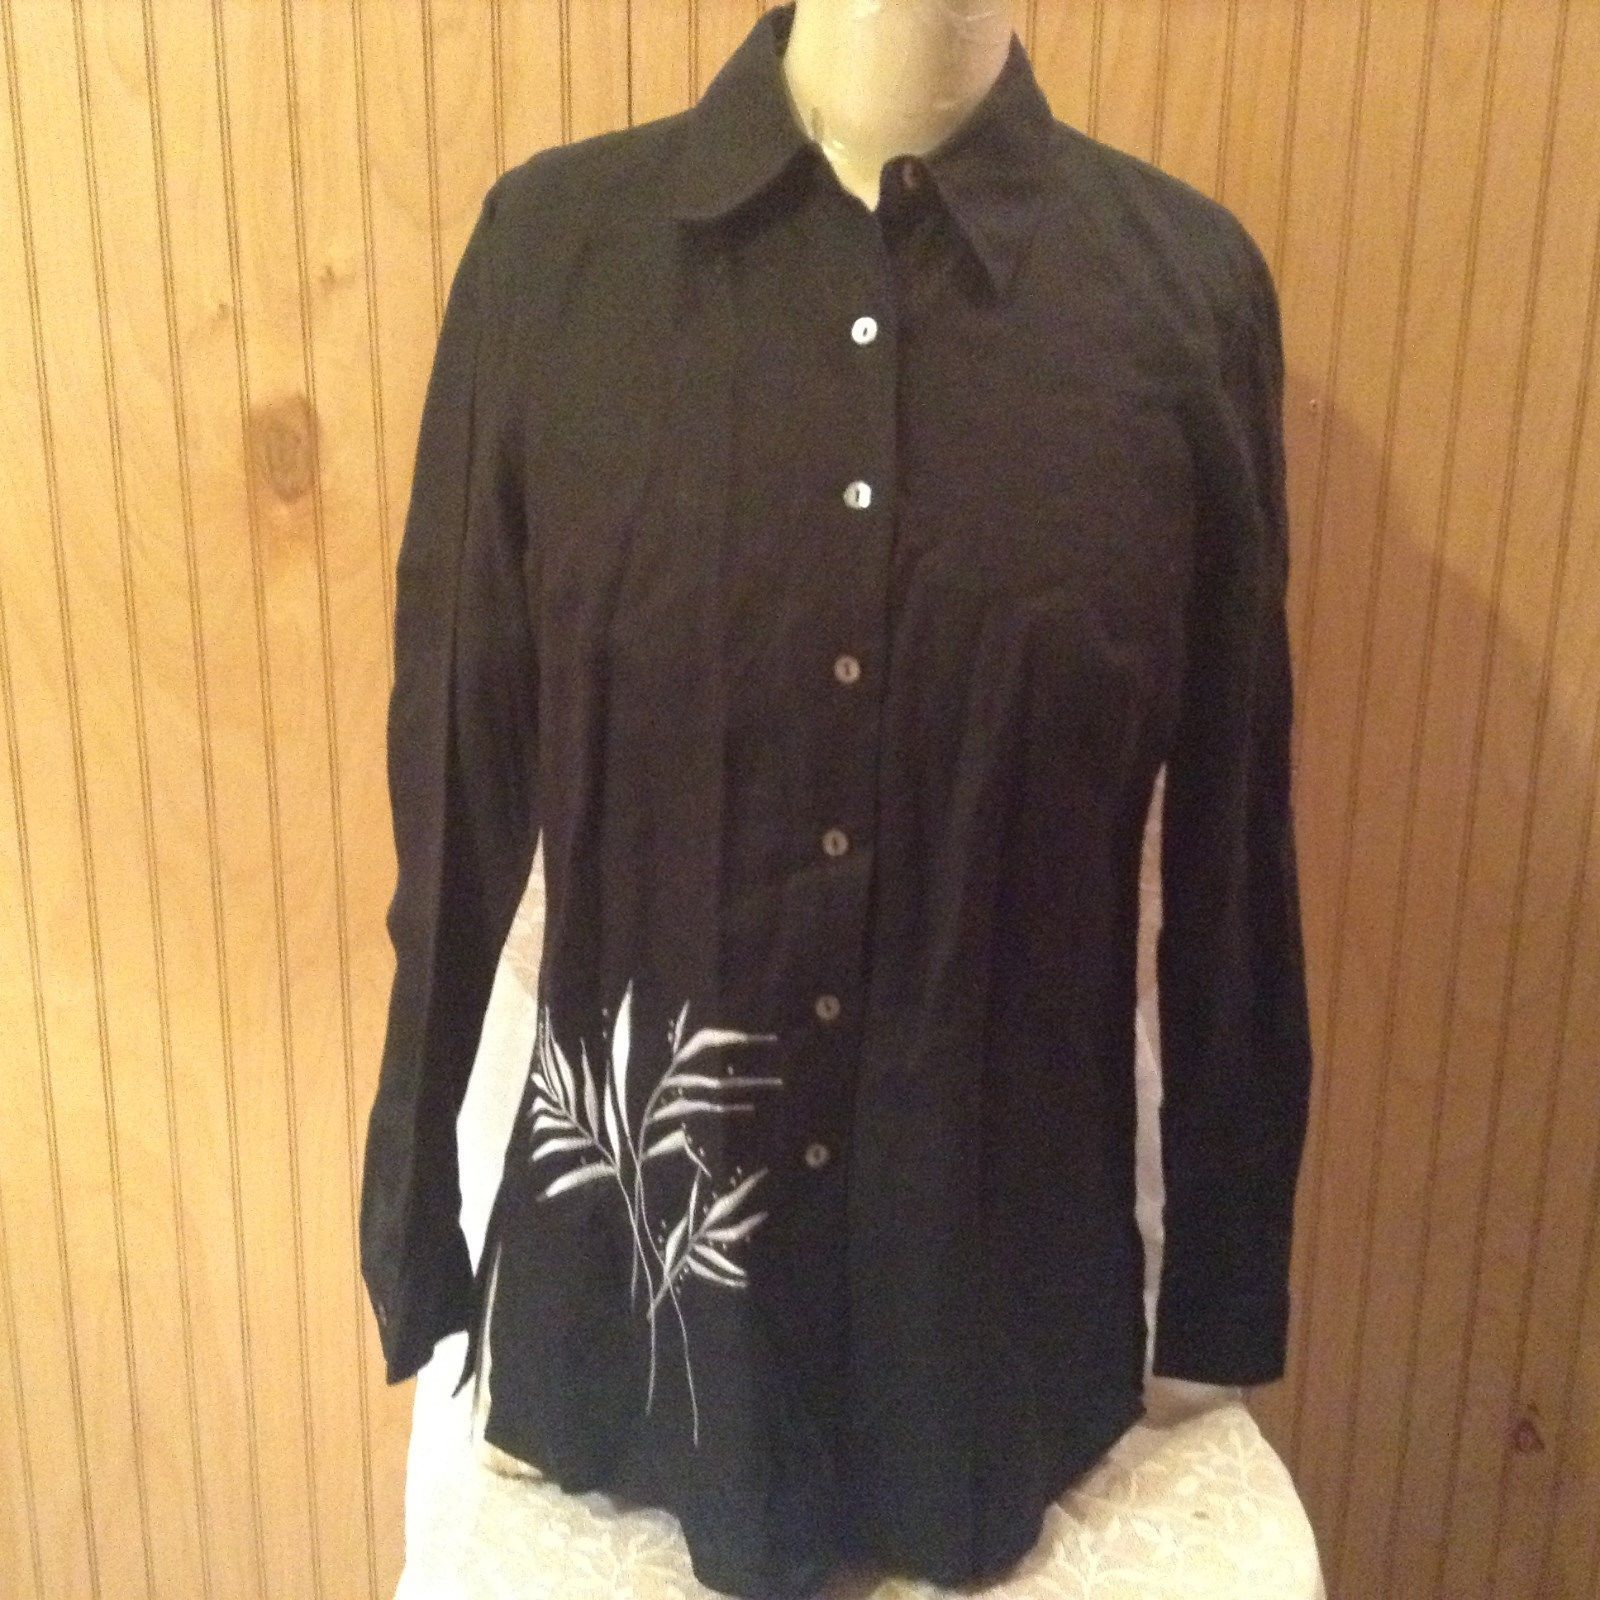 Edward Irish Linen Black 100 Percent Linen Button Down Shirt Size Small